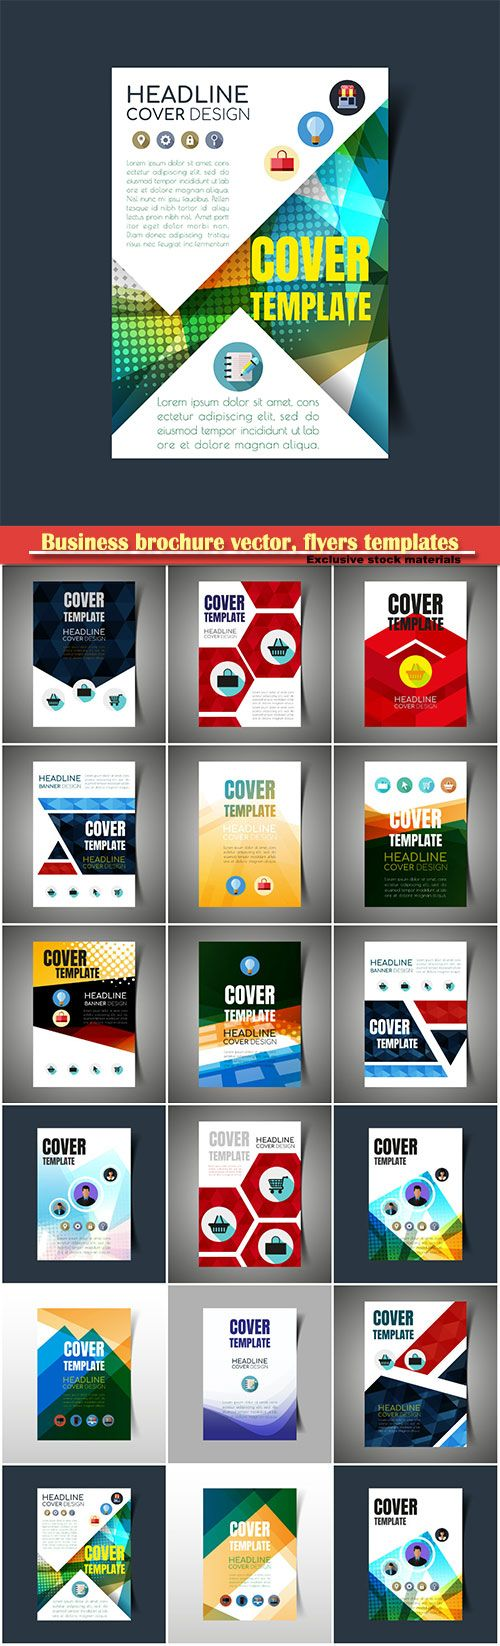 Download Business brochure vector flyers templates report cover design  81 Free